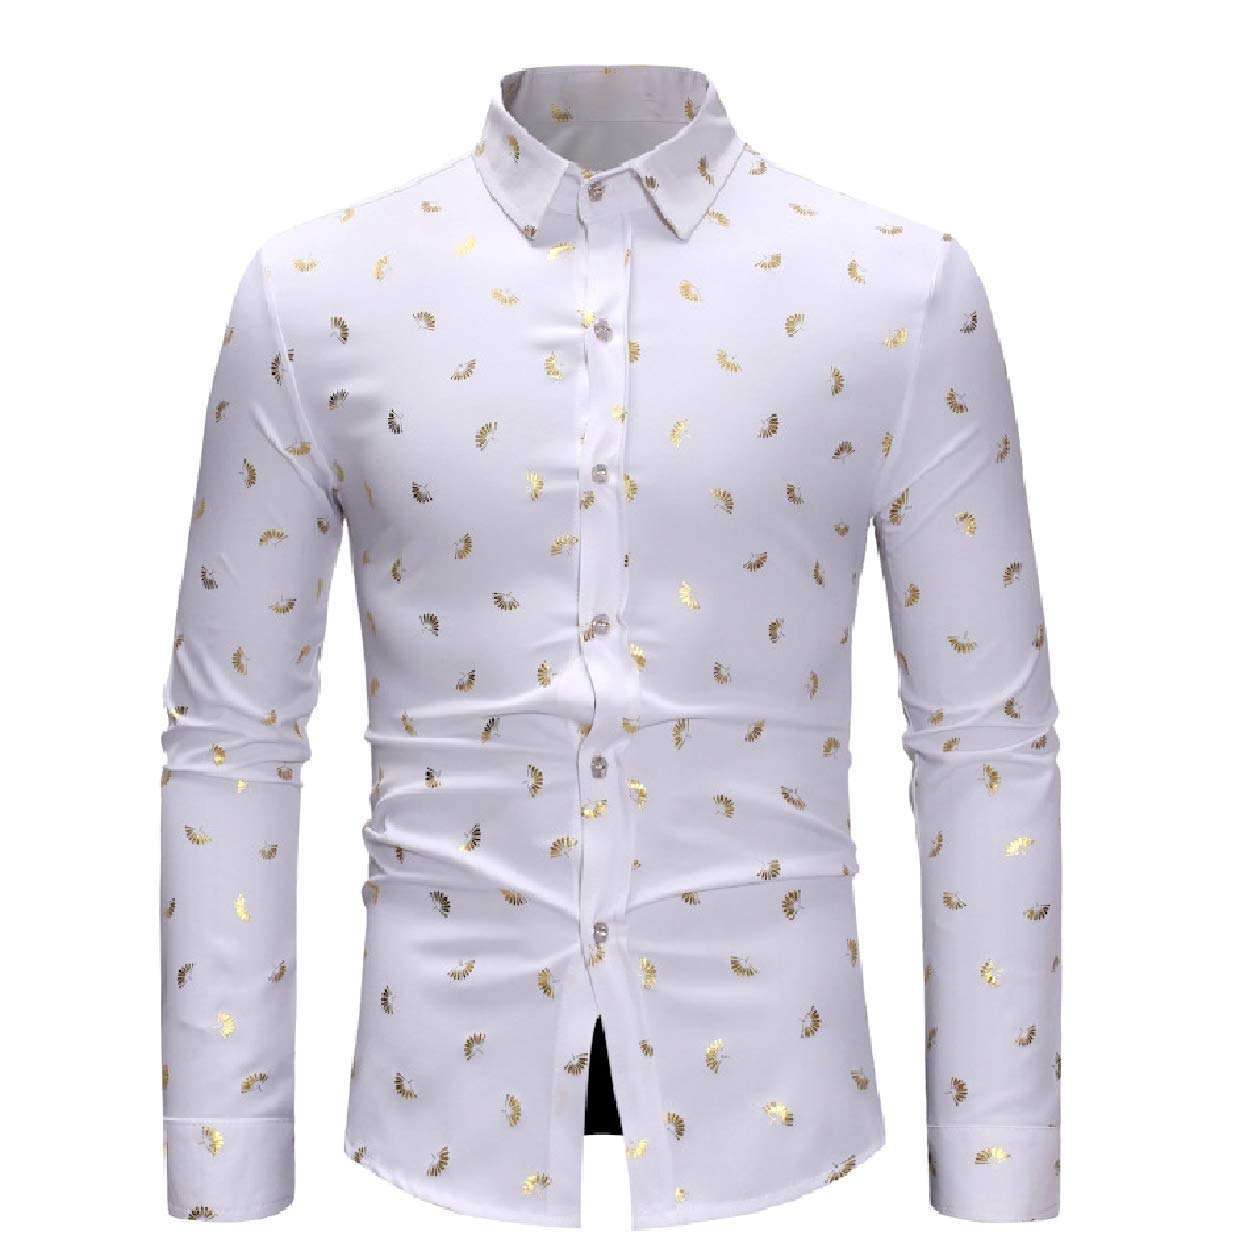 Abetteric Mens Long Sleeve Printed Button Down Classic Slim Fit Shirt Tops